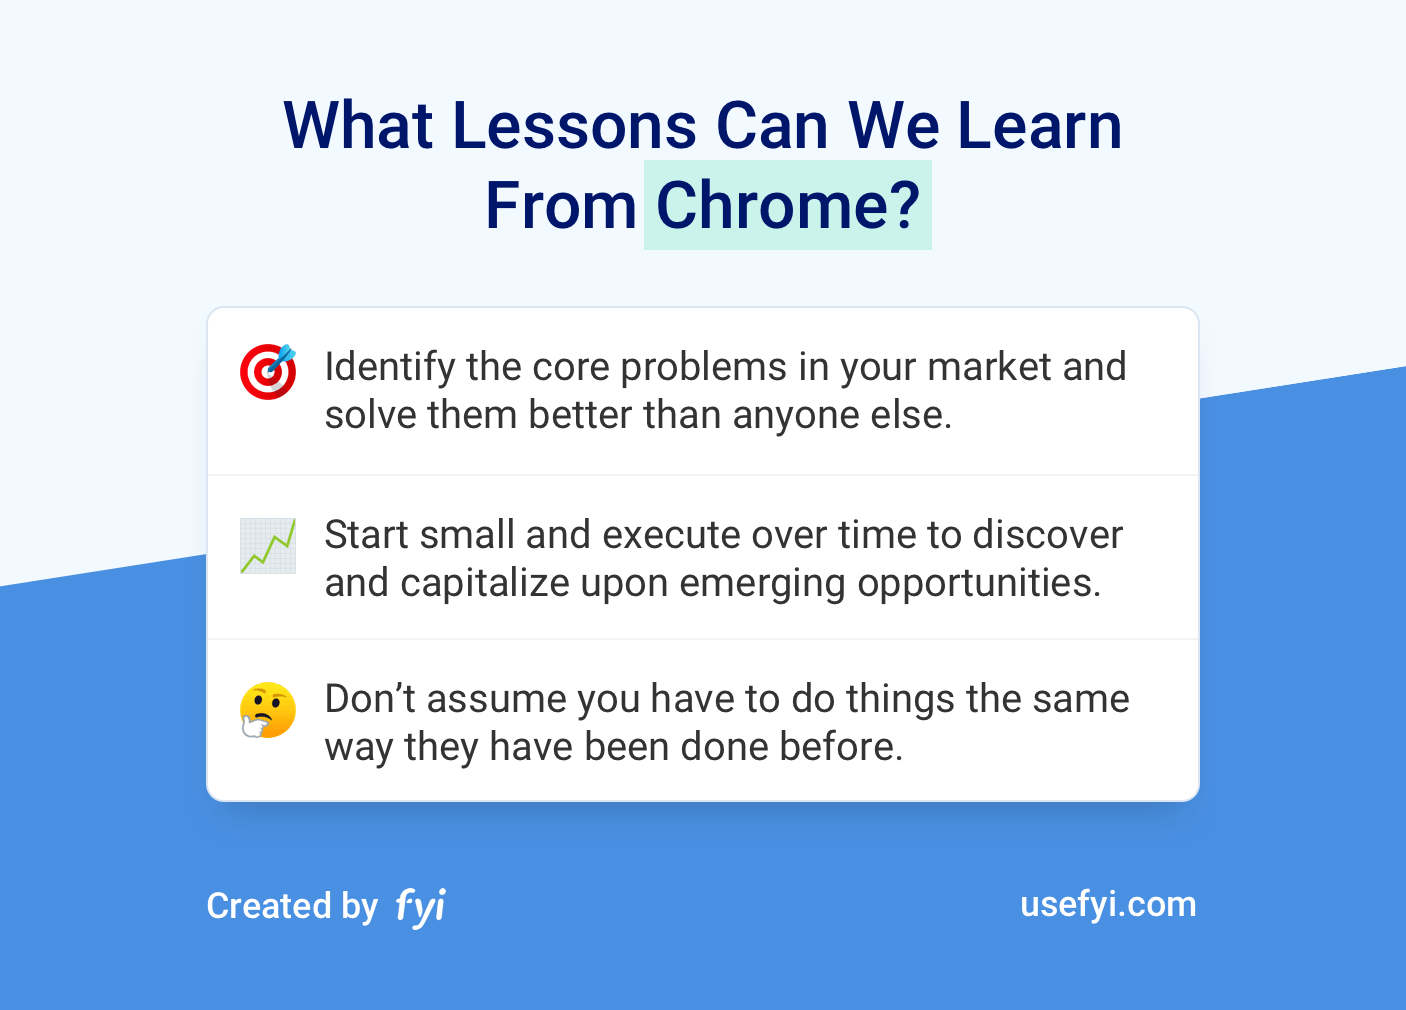 Lessons from Chrome